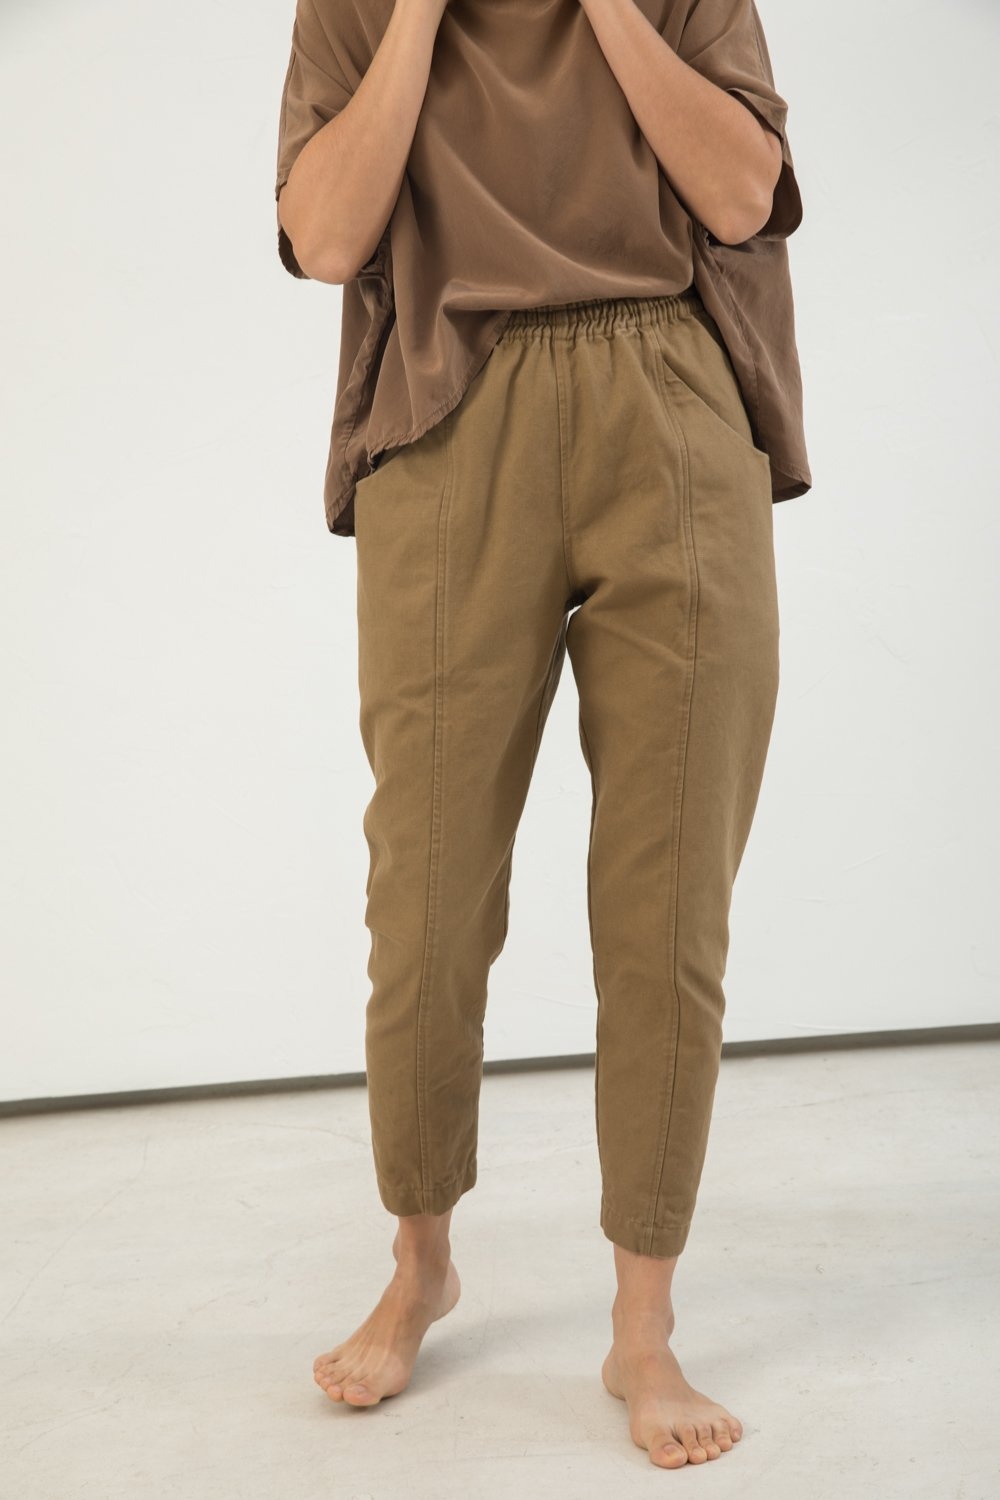 Clyde Work Pant in Cotton Canvas Clay - Lisa-4 Regular